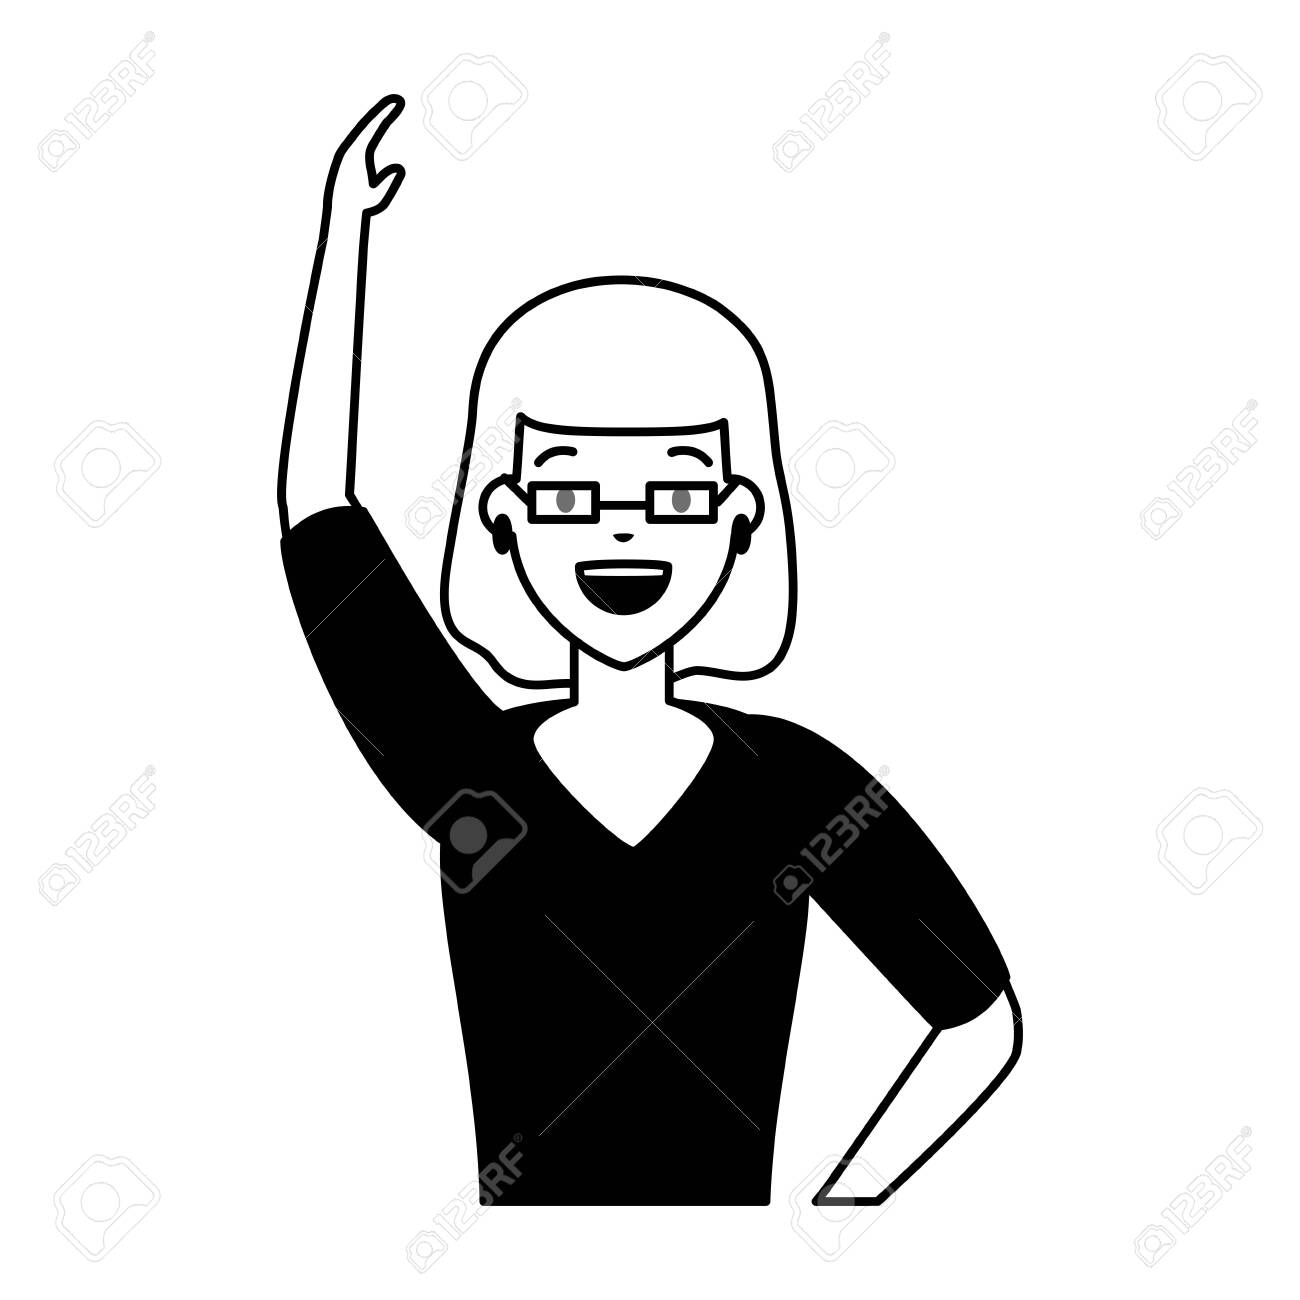 woman character portrait on white background vector illustration - 124311792